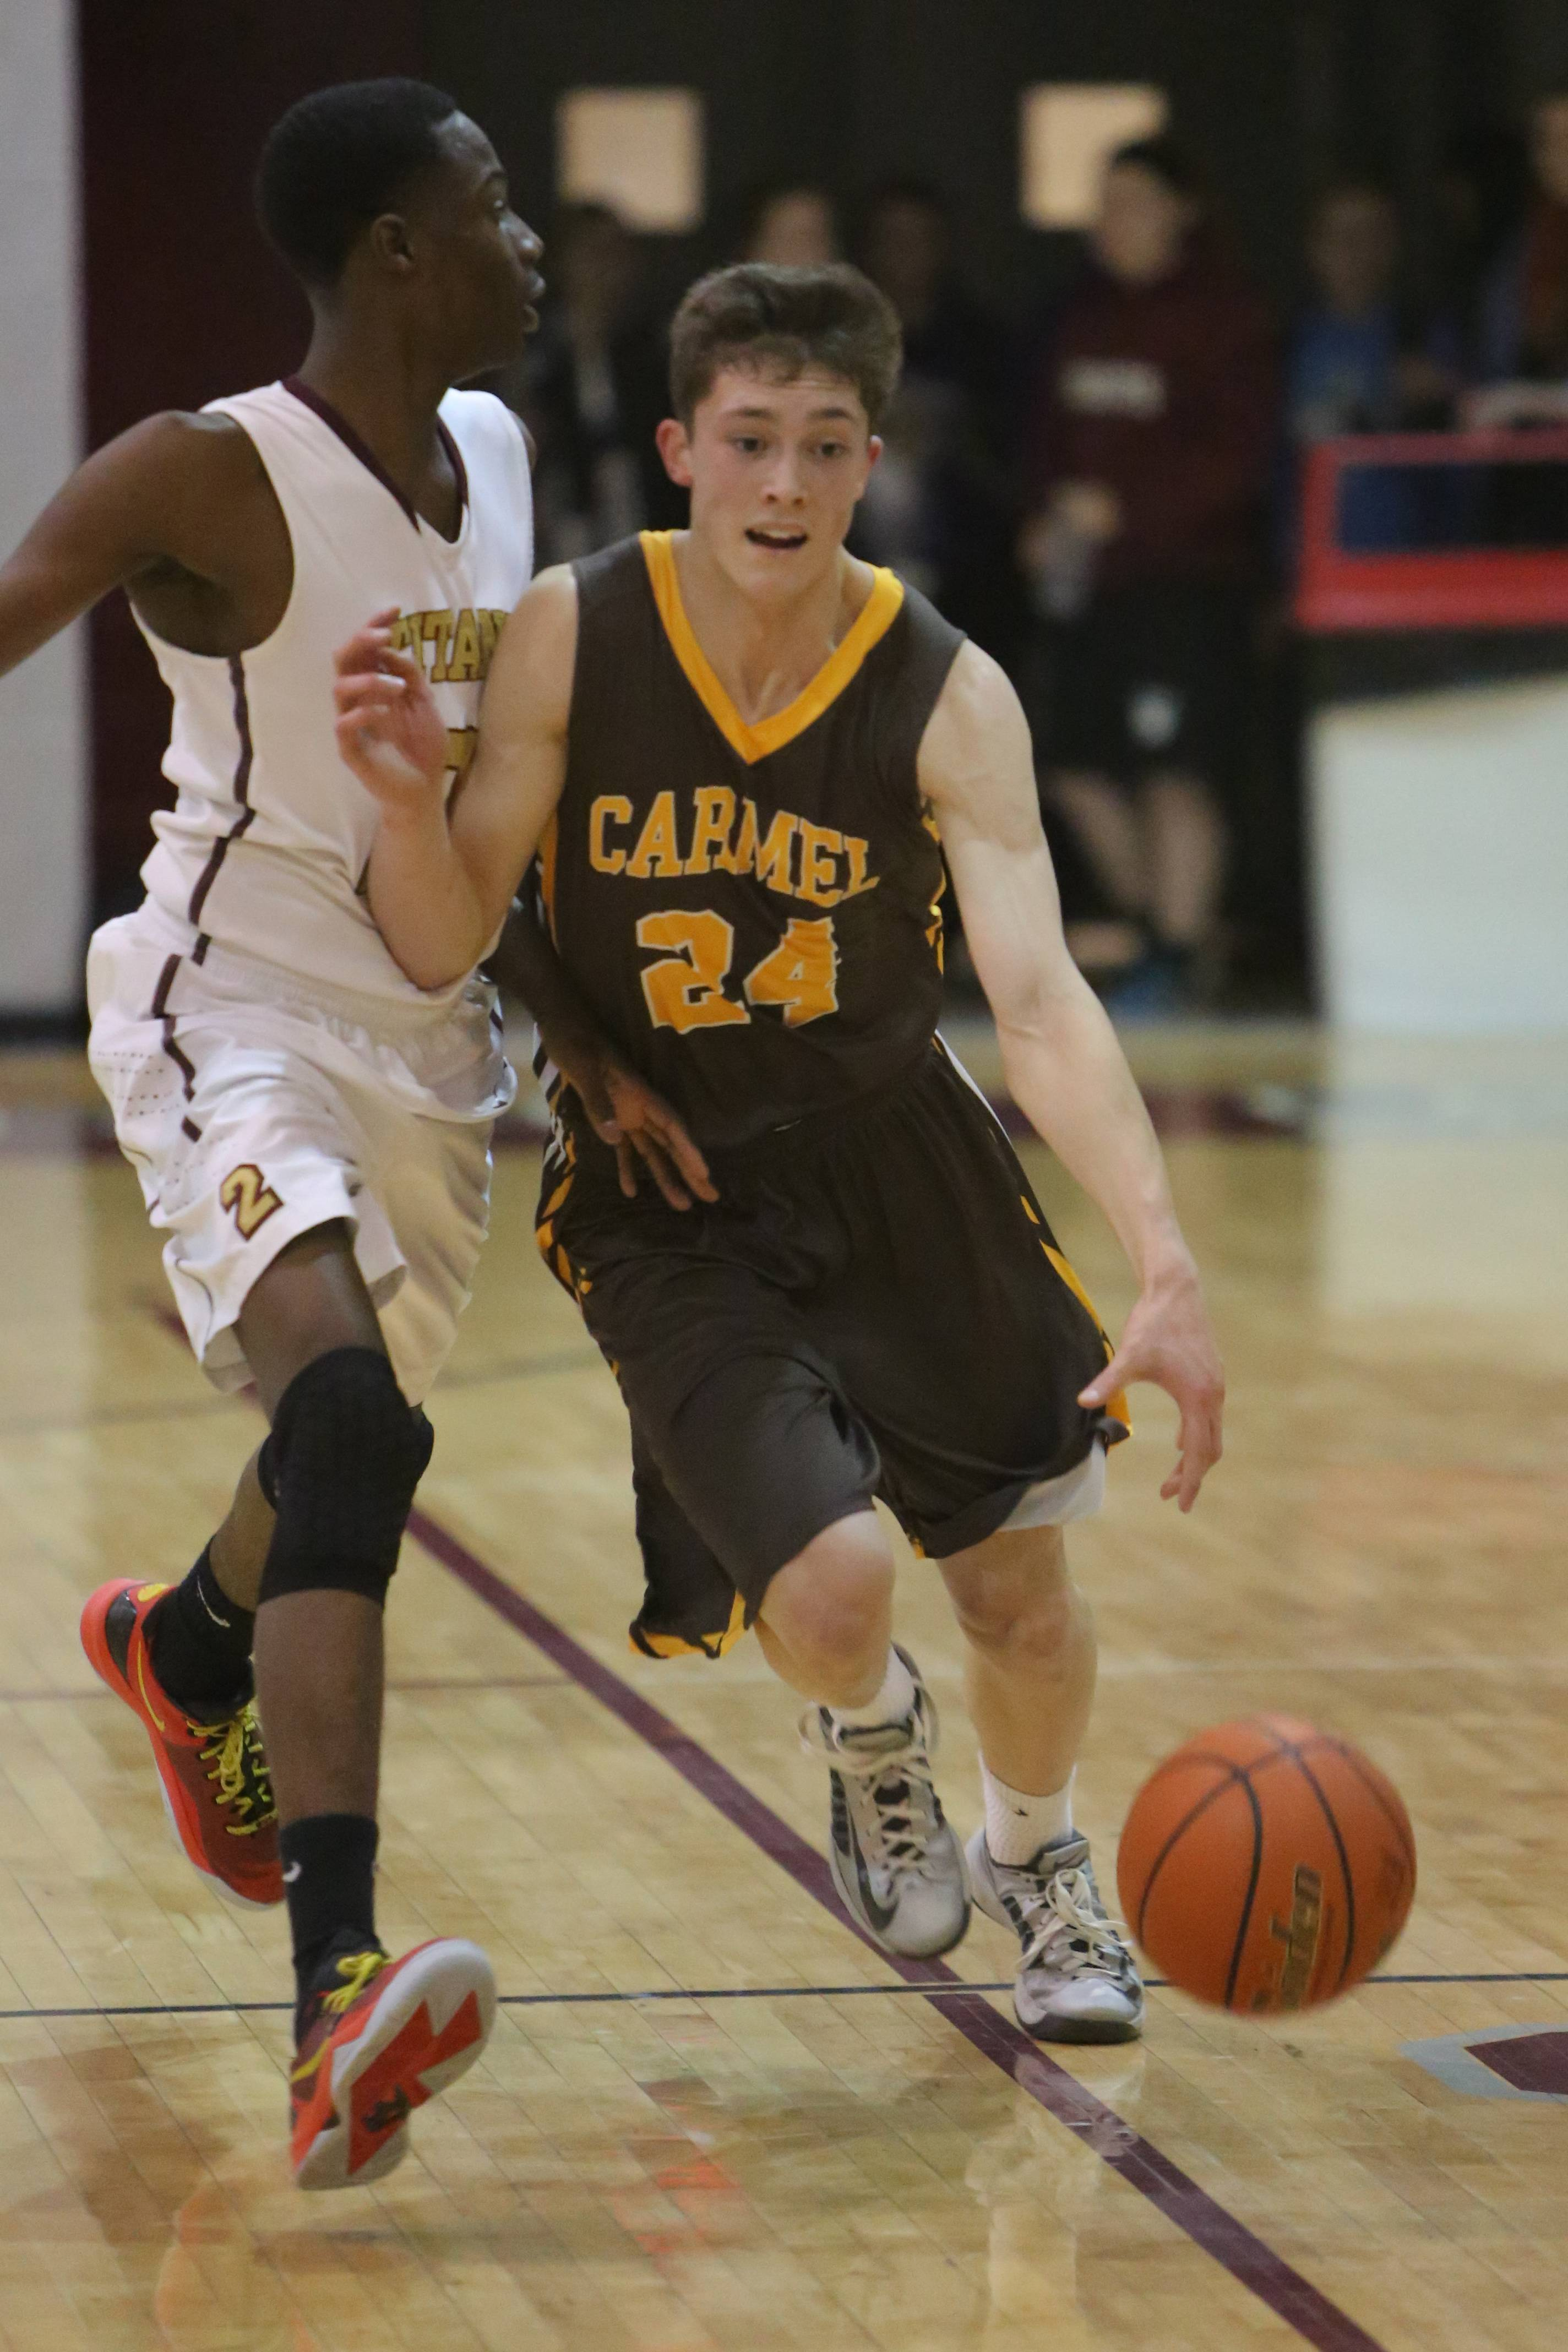 Images from the Carmel vs. Uplift boys basketball game on Wednesday, March 12 in Antioch.